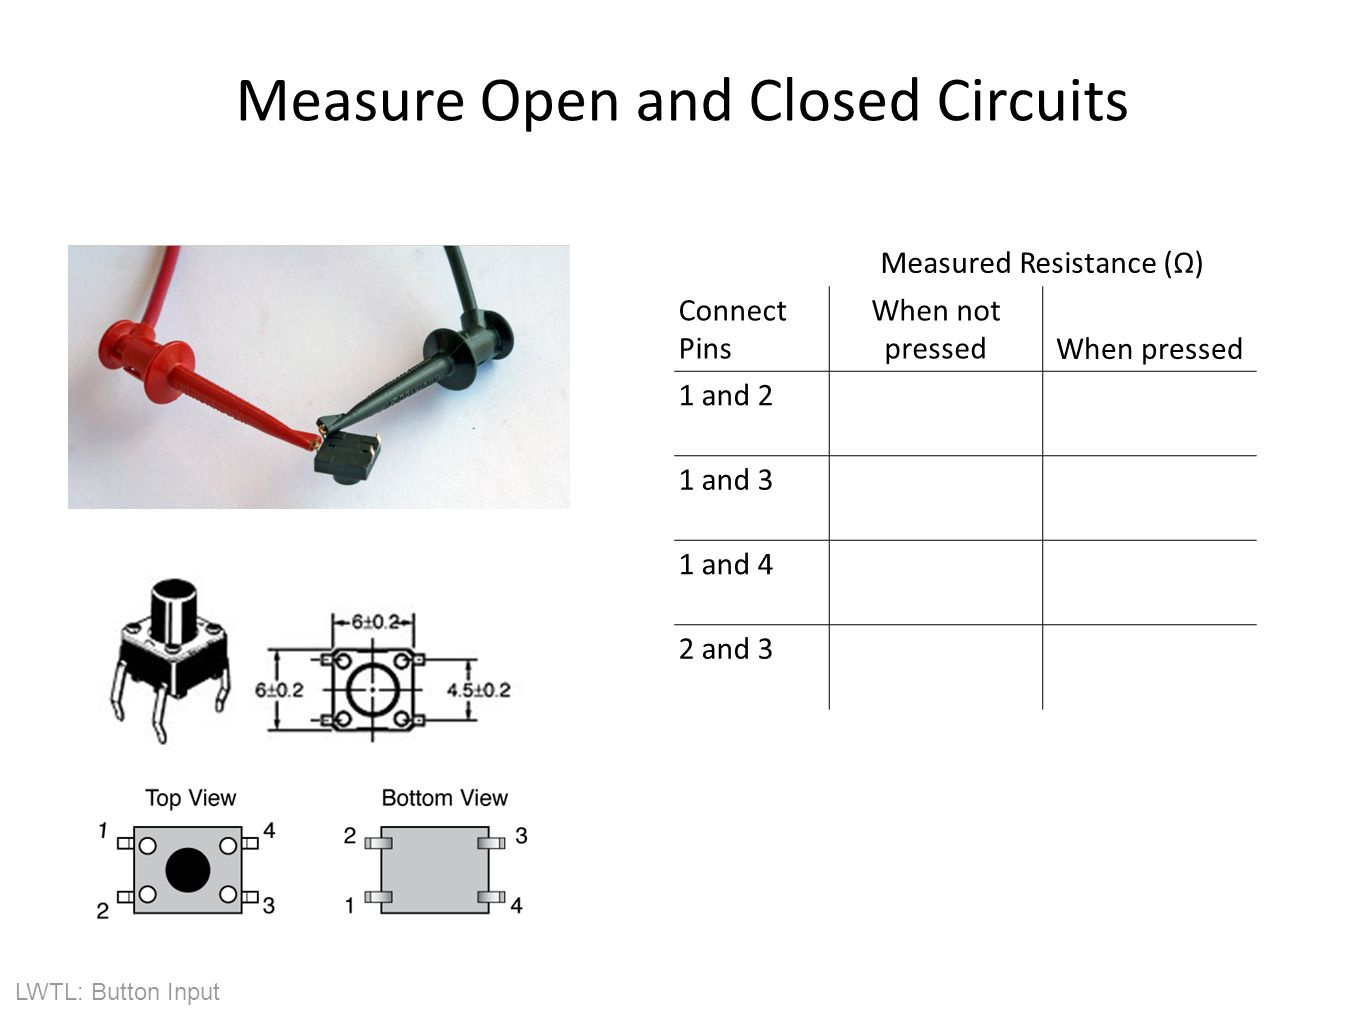 LWTL: Button Input Measure Open and Closed Circuits Measured Resistance (Ω) Connect Pins When not pressedWhen pressed 1 and 2 1 and 3 1 and 4 2 and 3 Sketch Connections: Data from Measurements: